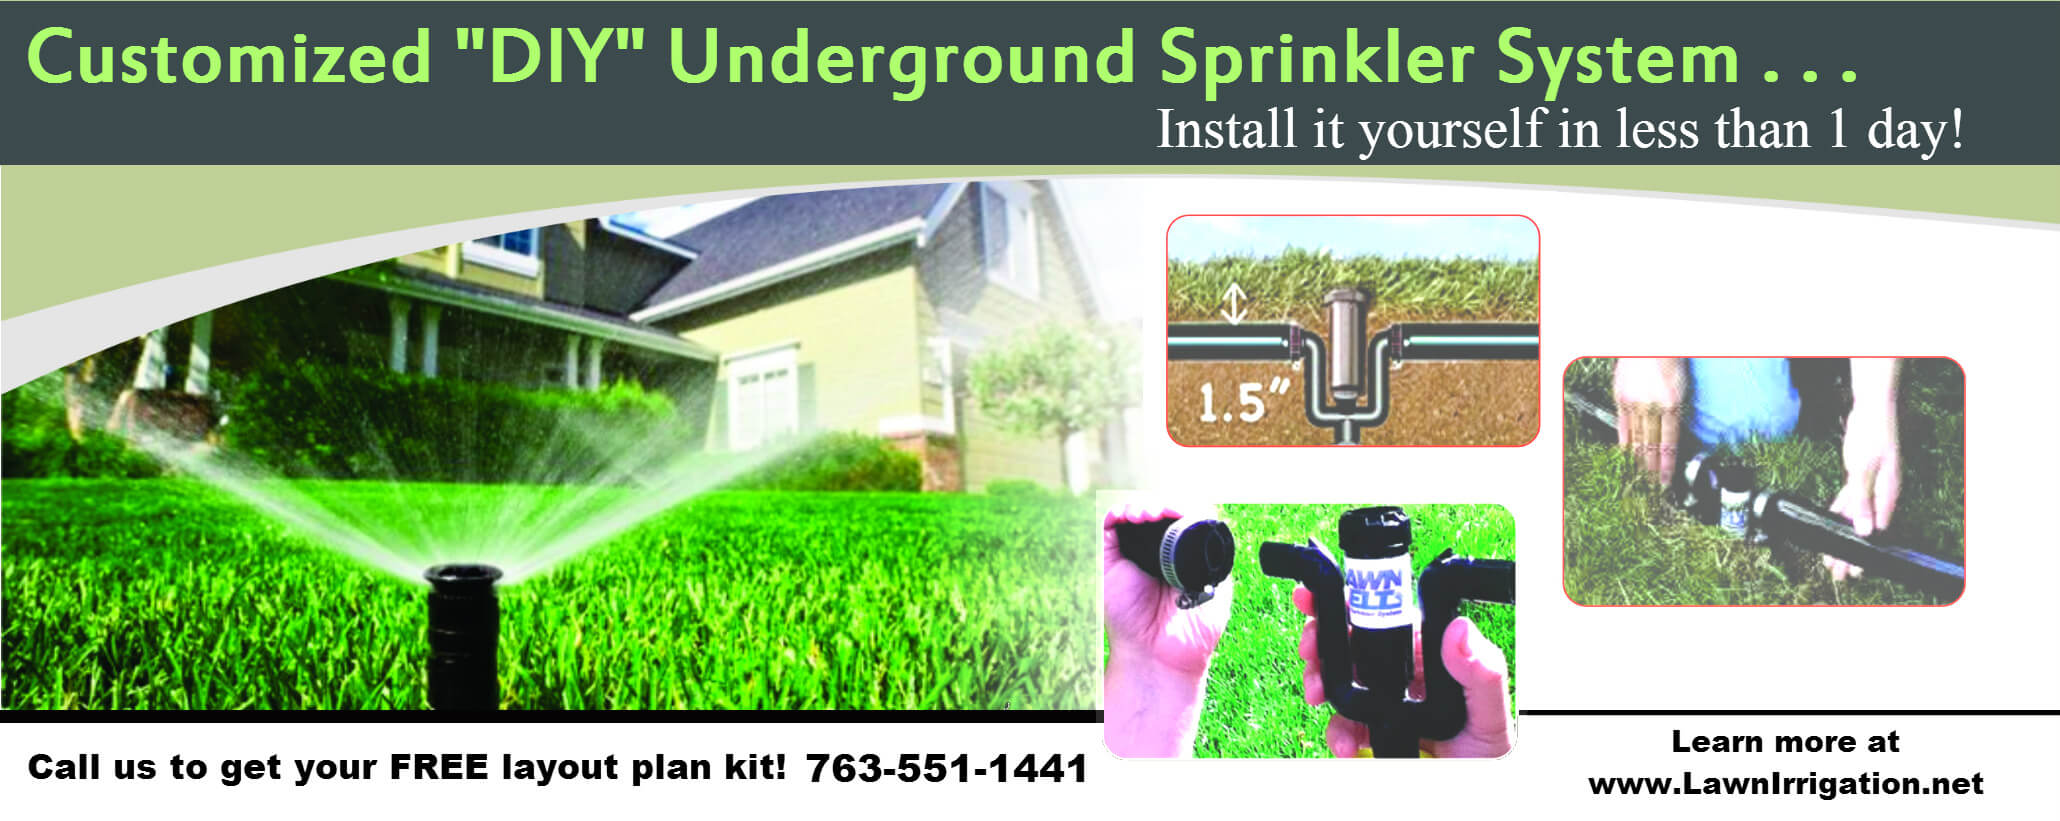 Do it Yourself Underground Sprinkler System